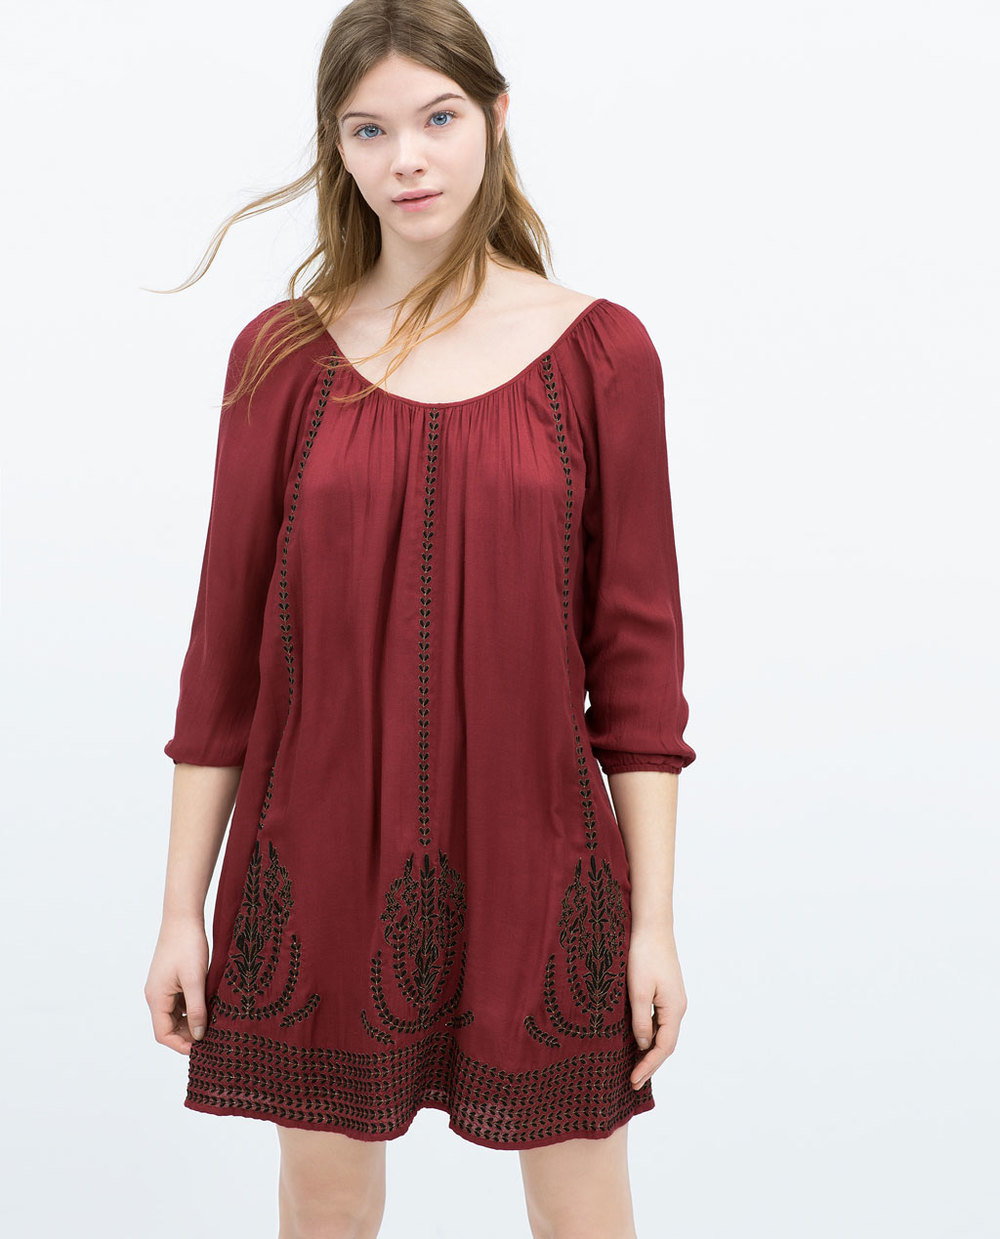 embroidered dress zara.jpg